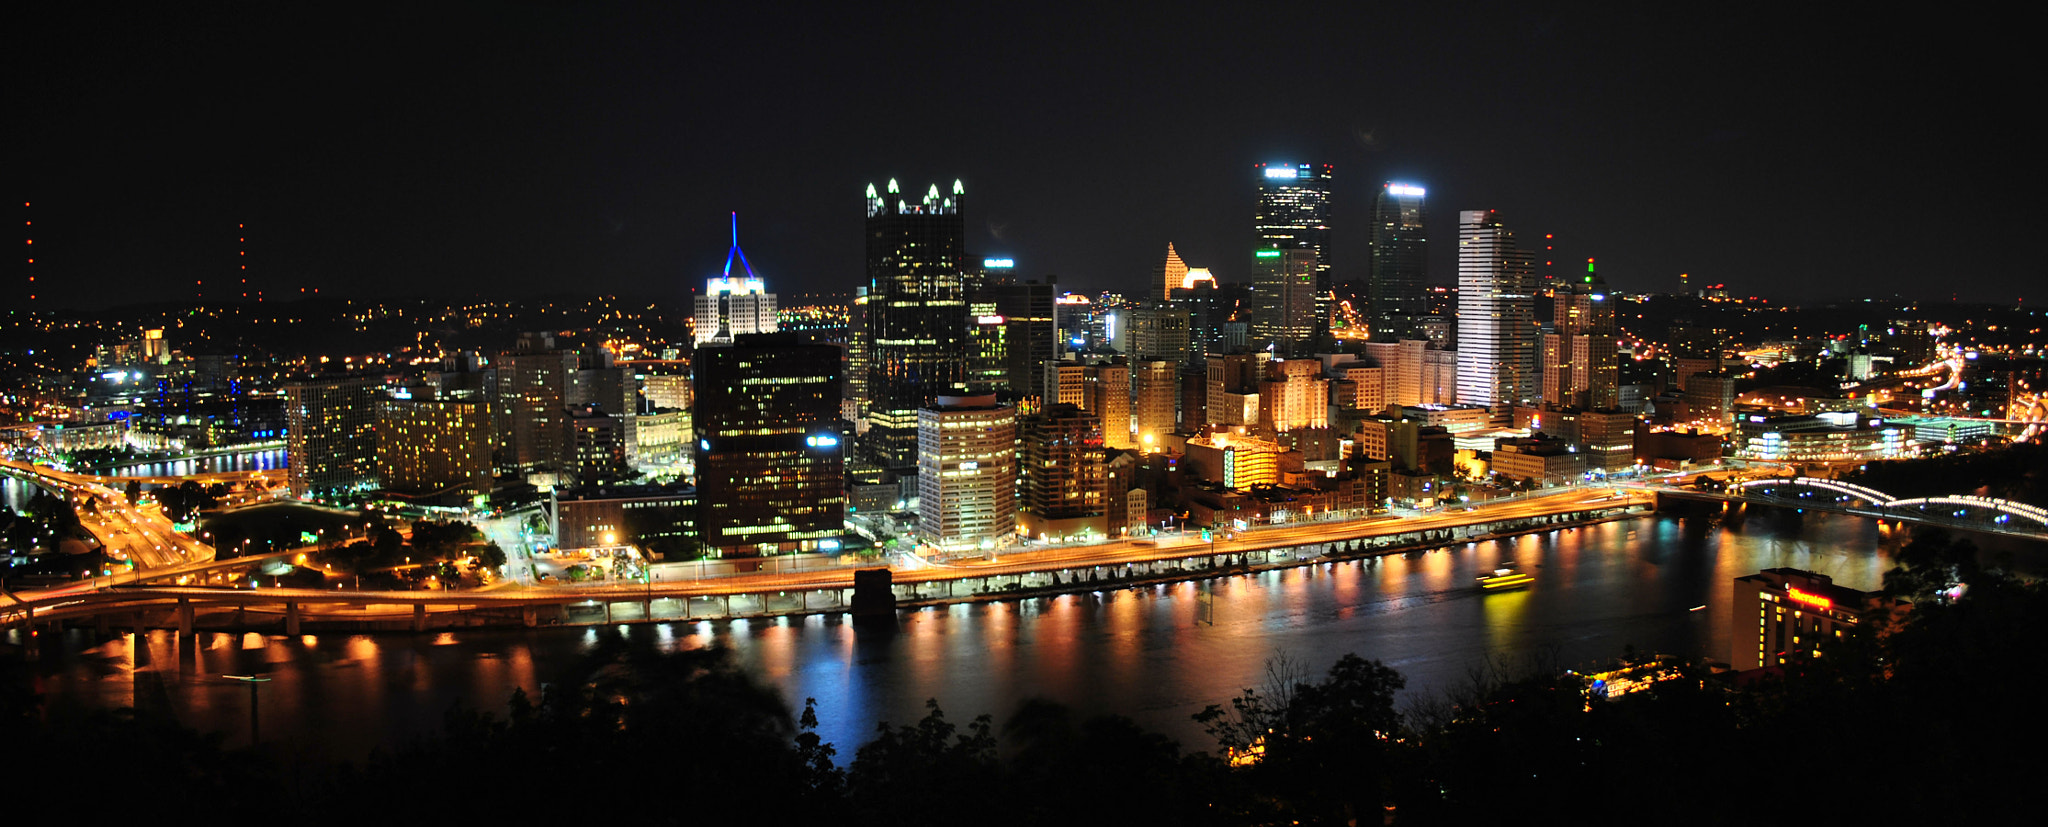 Photograph Pittsburgh Skyline by Haridas Attur on 500px